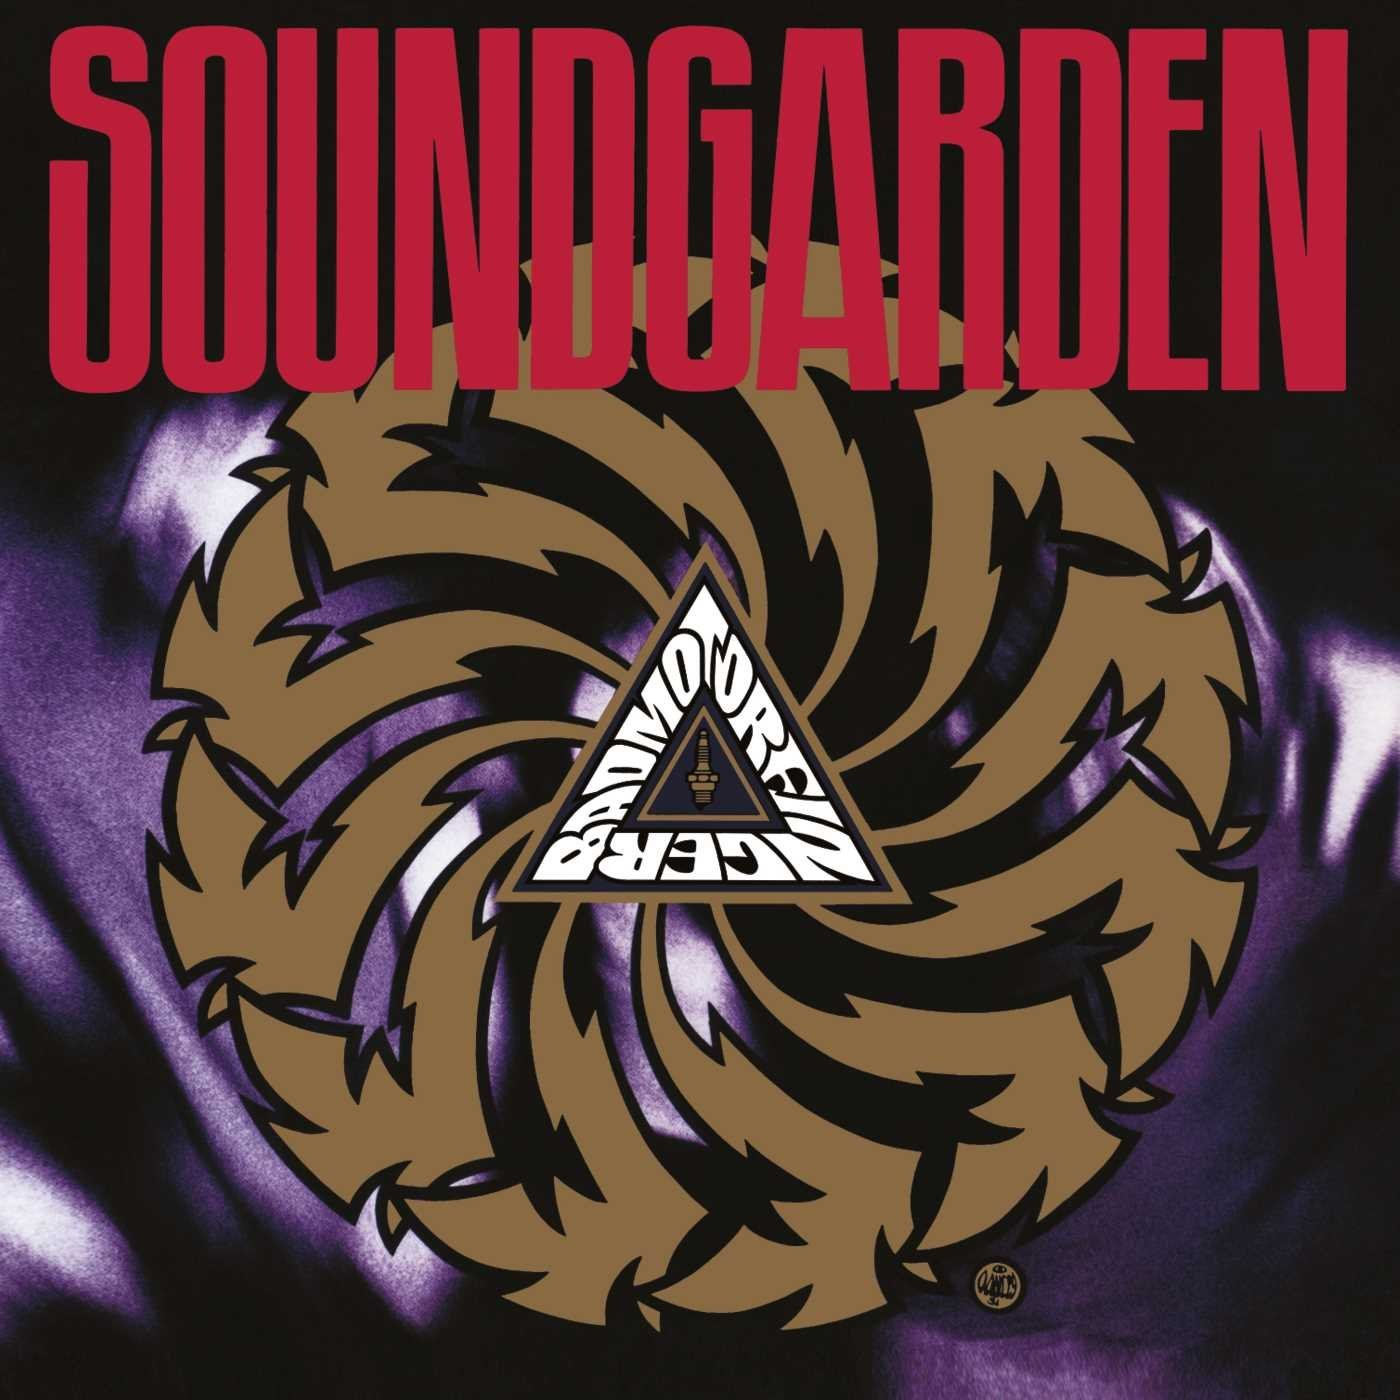 soundgarden-badmotorfinger.jpg